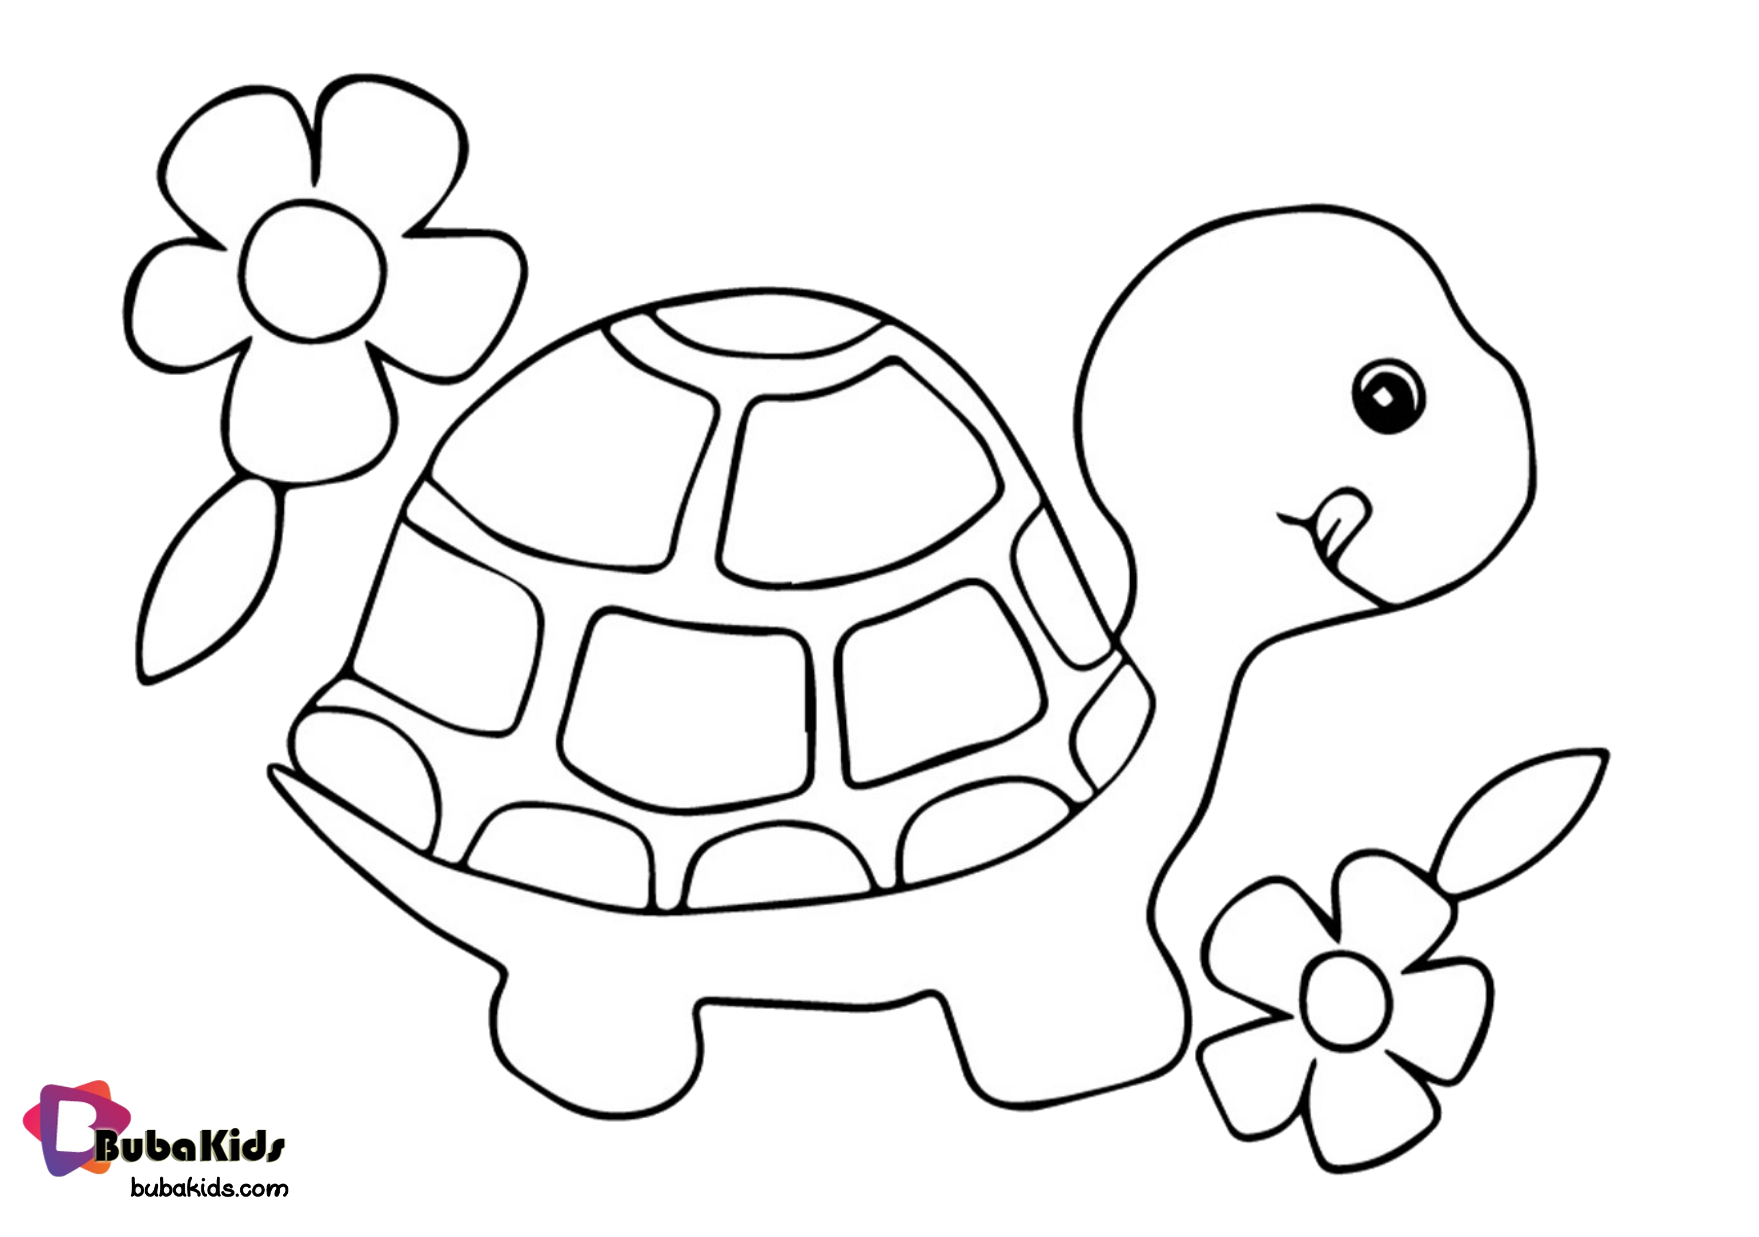 turtle printable coloring pages coloring pages turtles free printable coloring pages printable pages turtle coloring